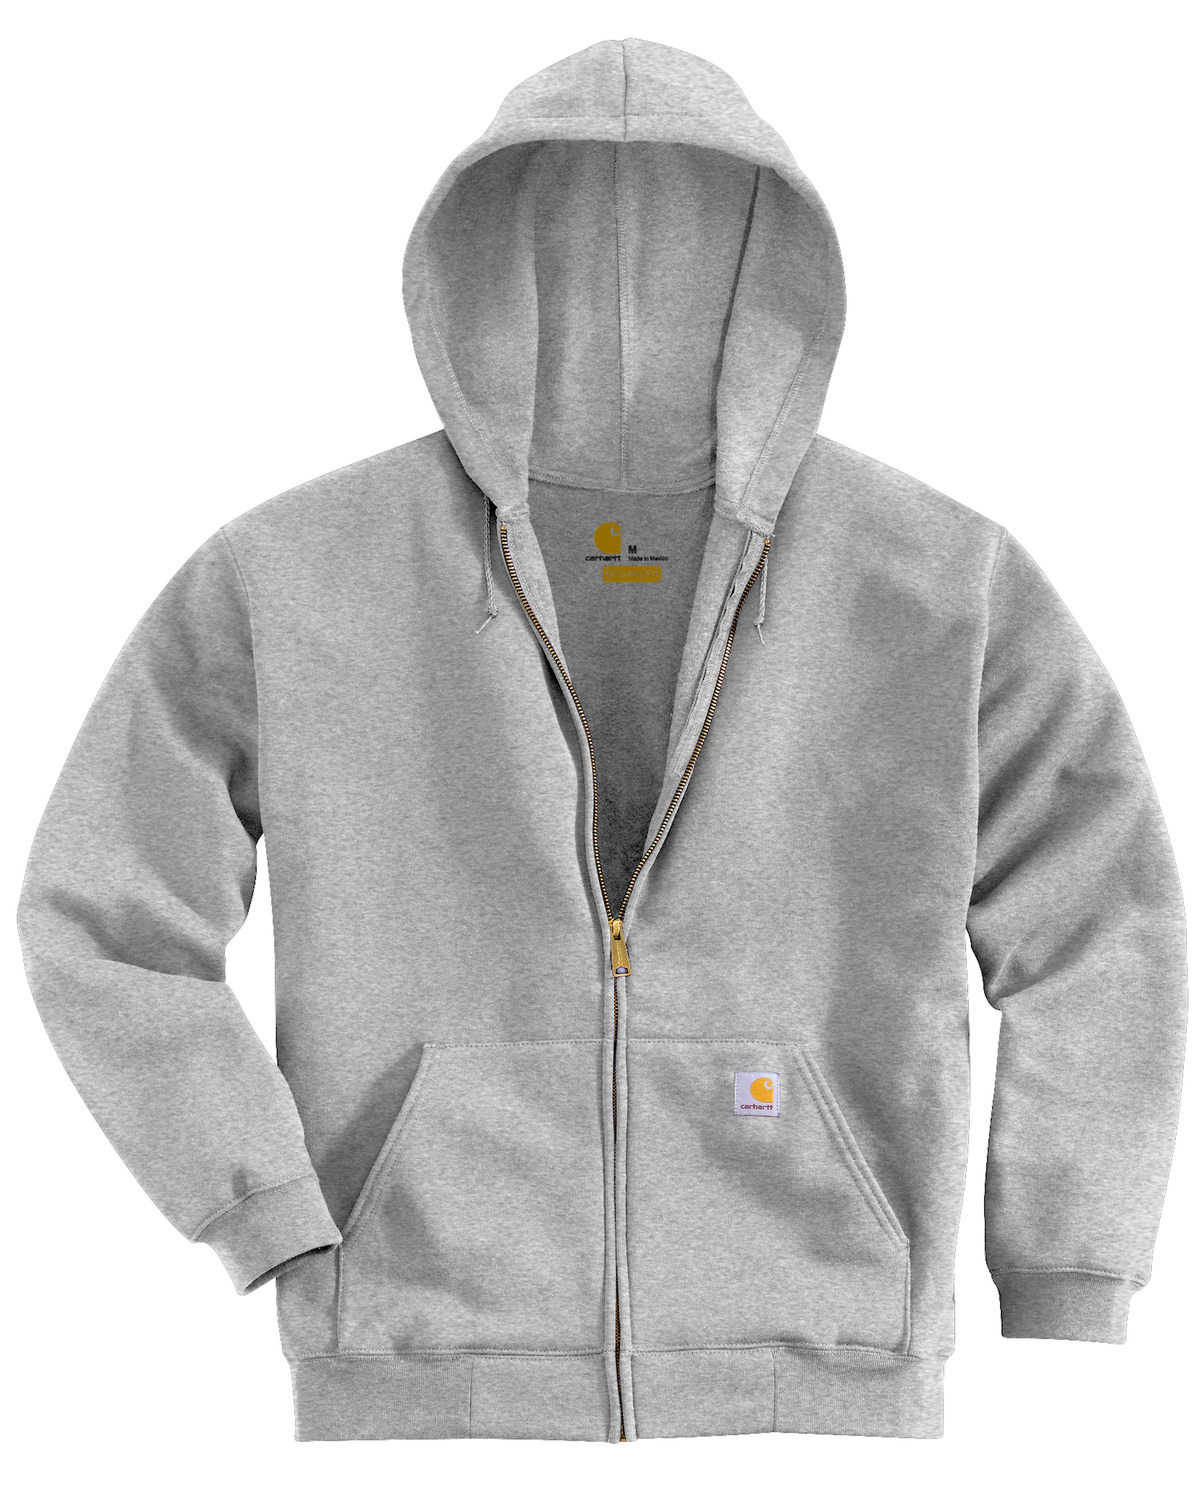 c437c9af7 Zoomed Image Carhartt Men's Midweight Hooded Zip-Front Sweatshirt, Grey, ...